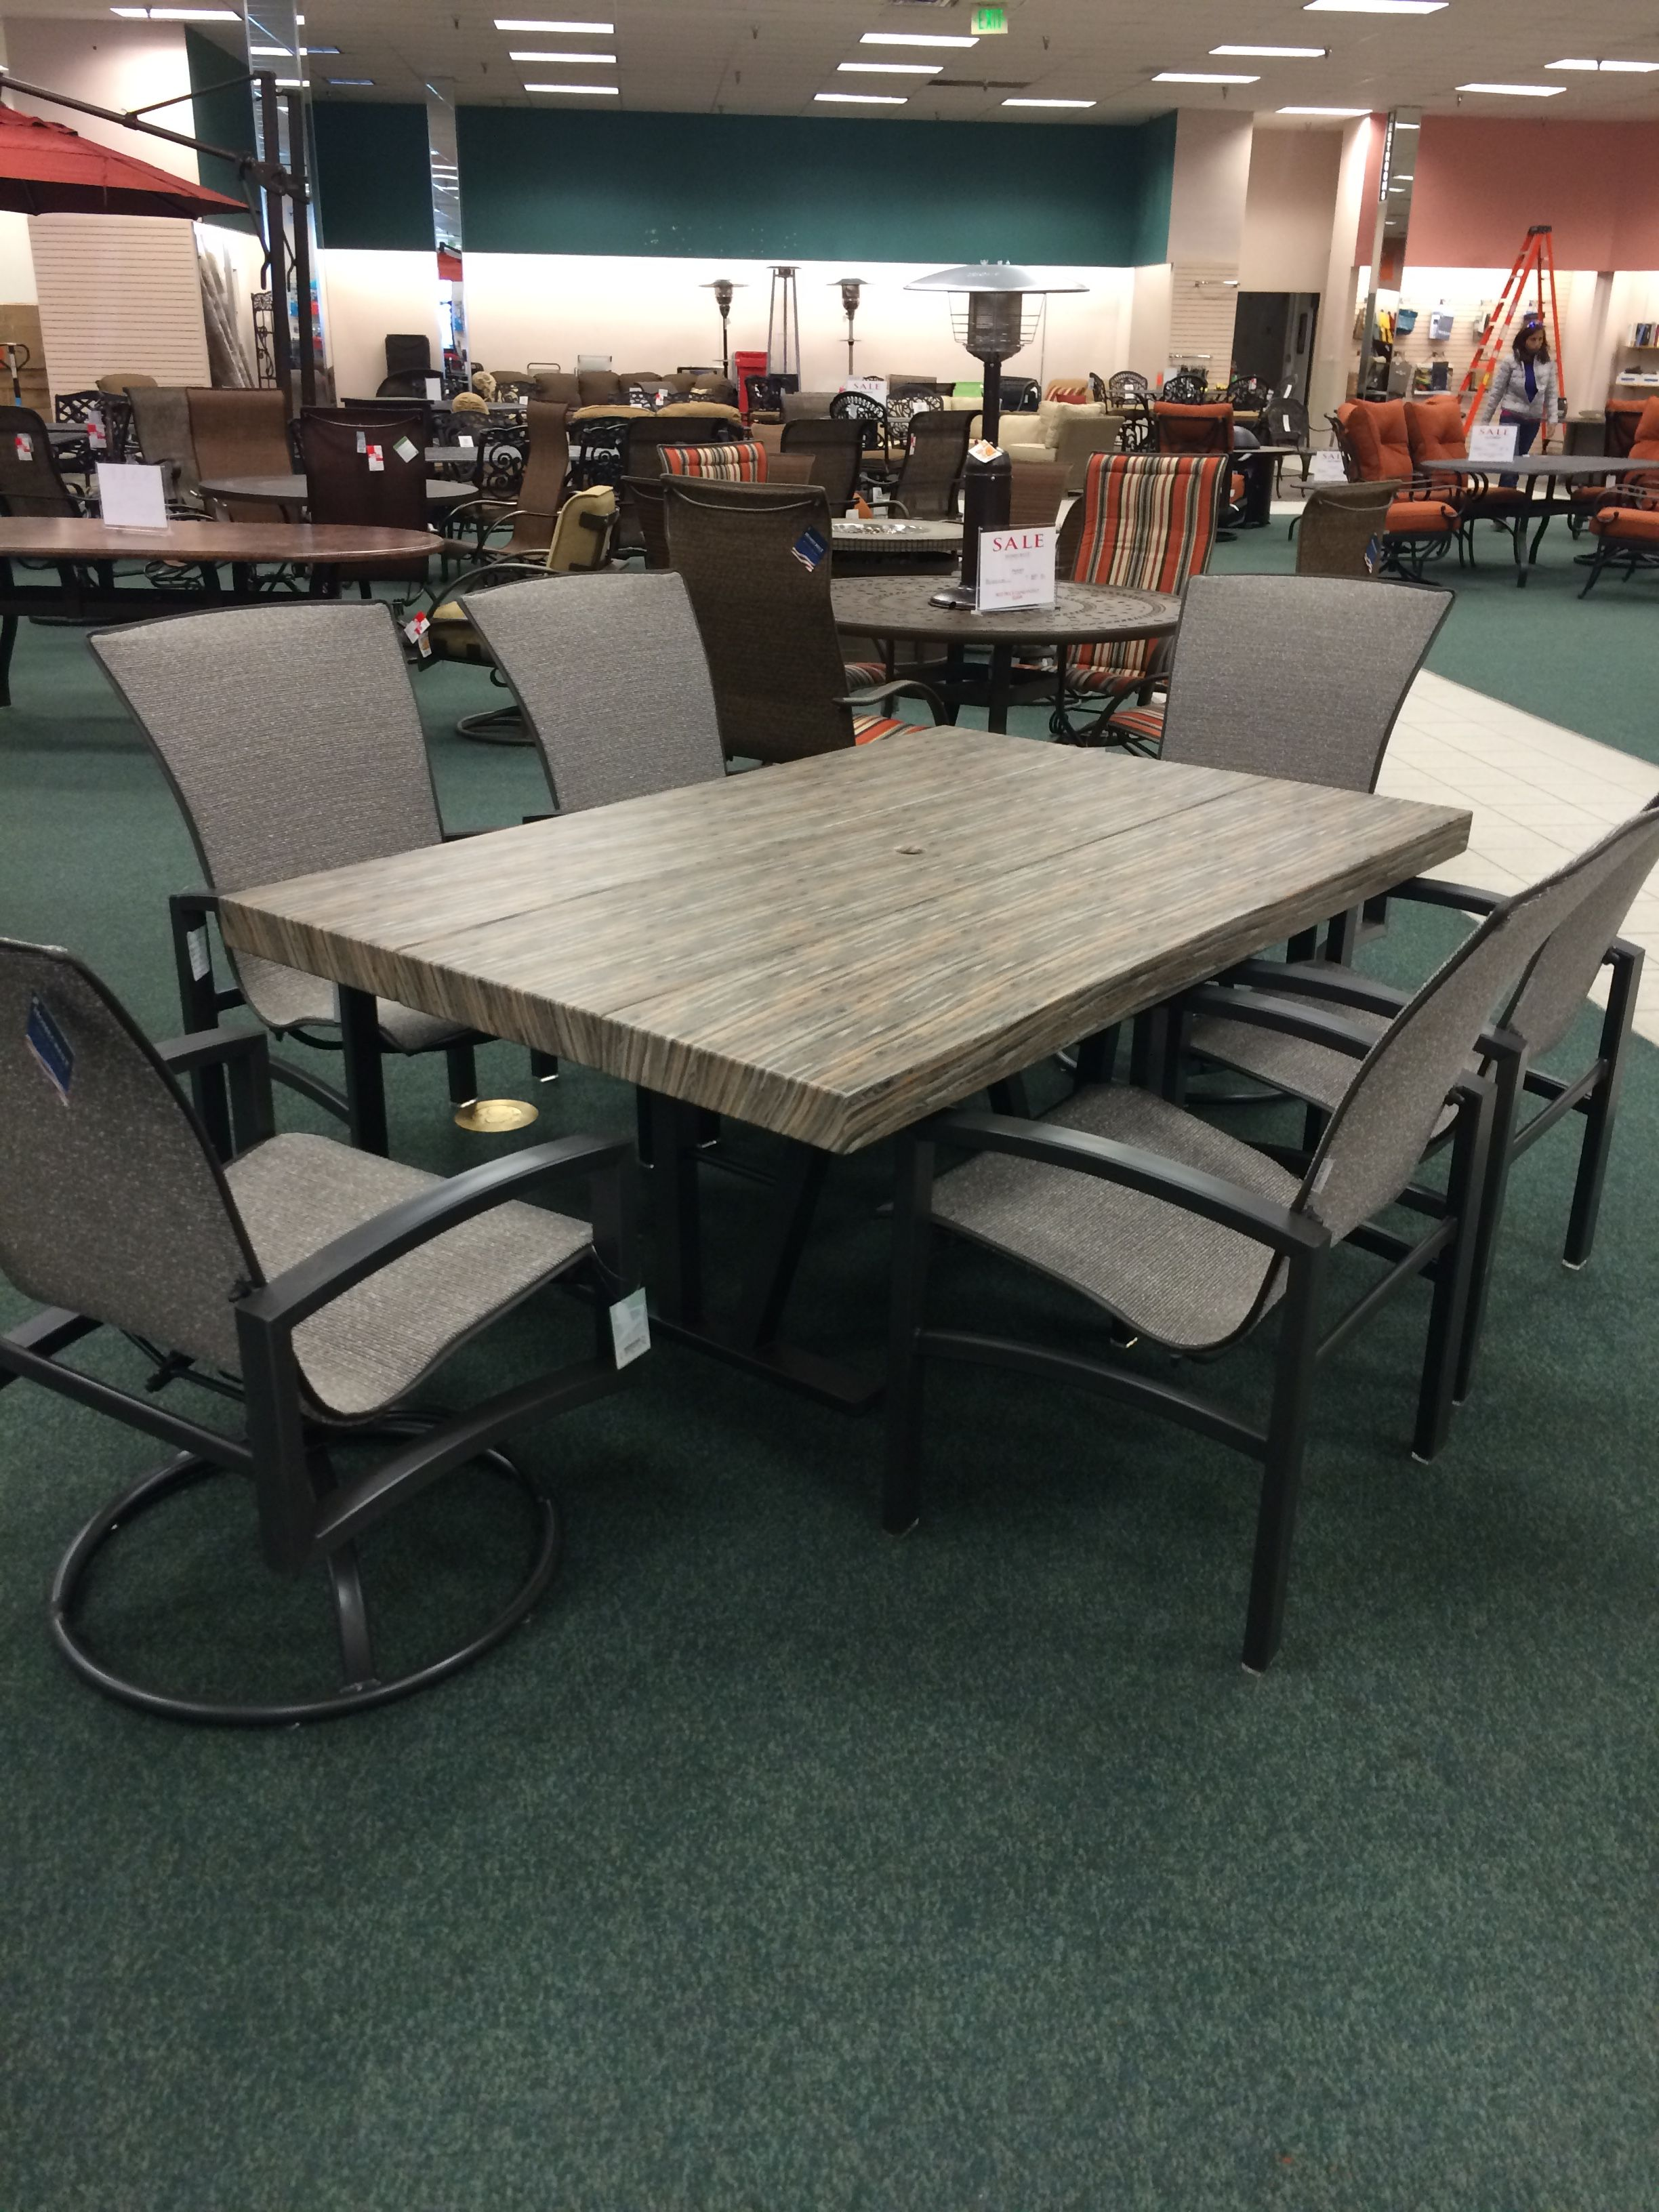 Christy Sports Patio Furniture In Littleton, CO Is Displaying Our Havenhill  Collection With The New